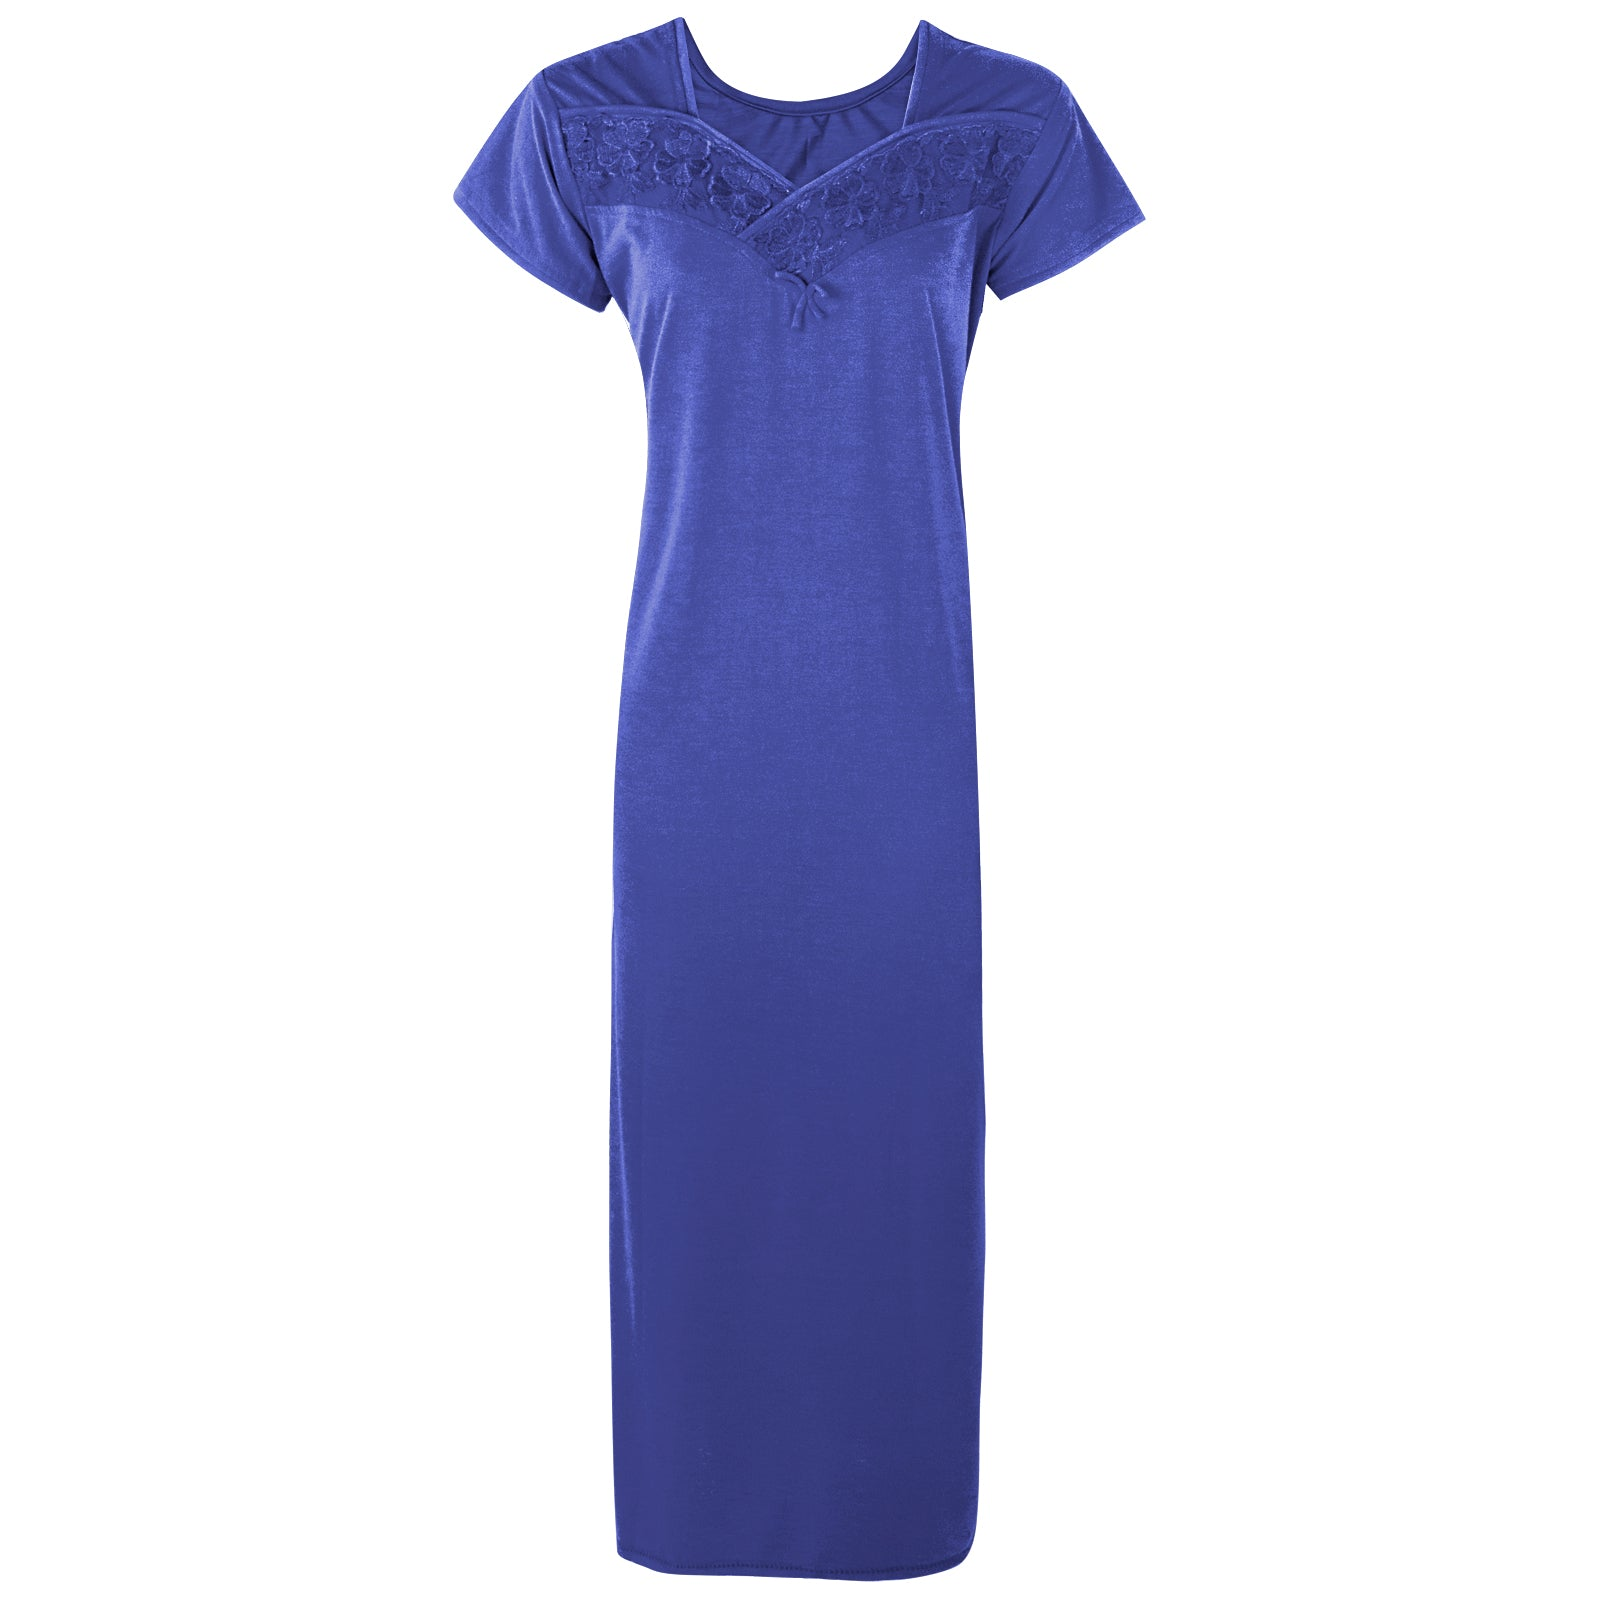 Colour: Blue Cotton Blend Comfy Jersey Nightdress Size: 12-16